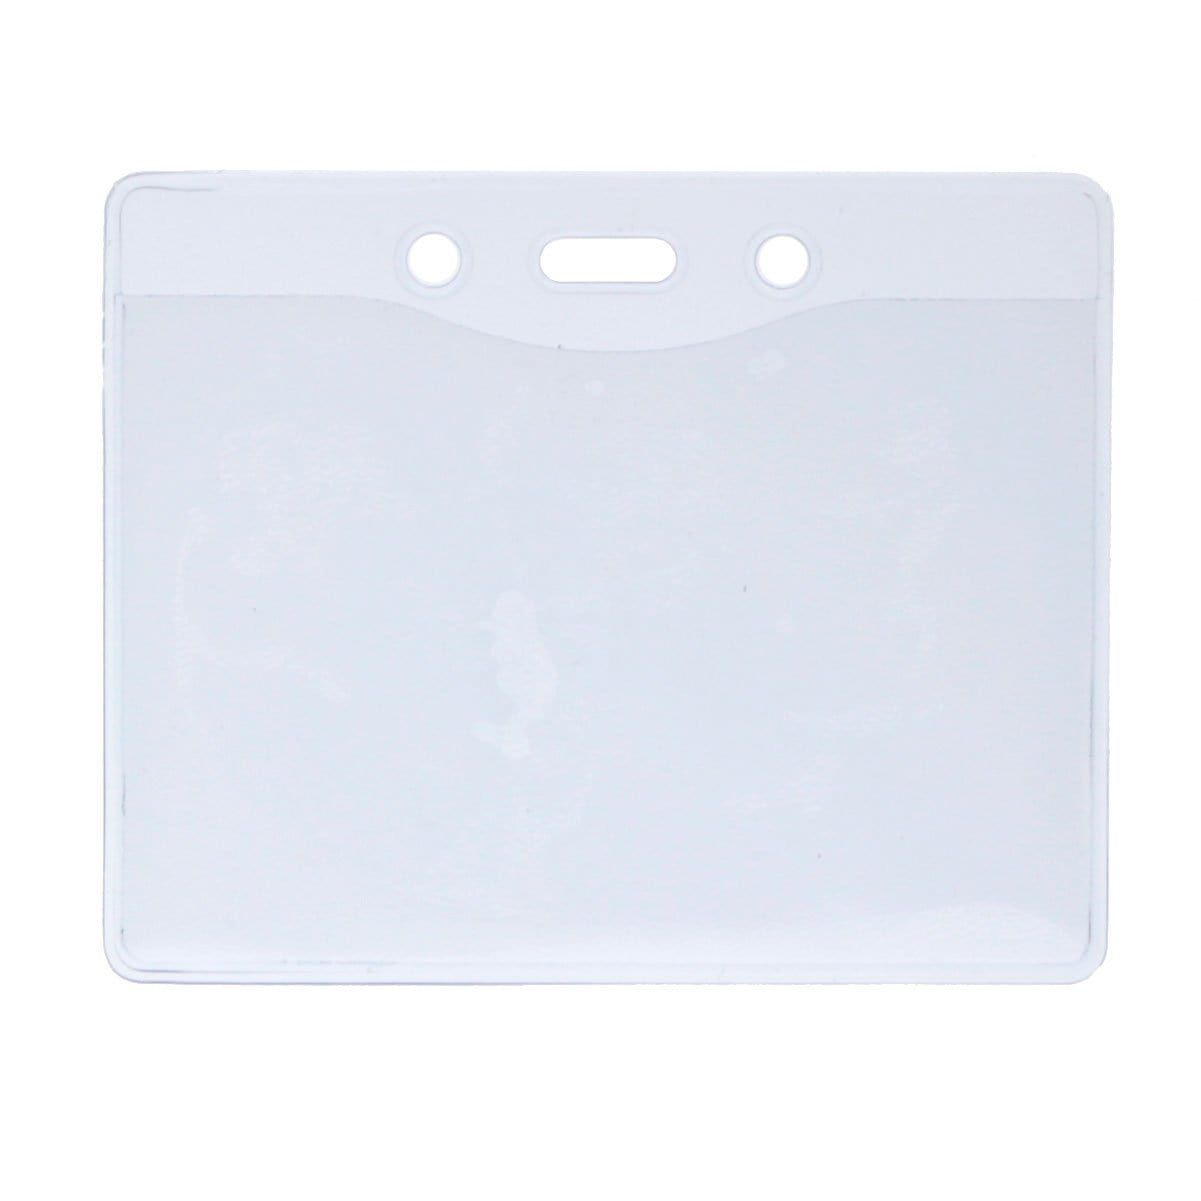 Clear Vinyl Horizontal Military Card Size Badge Holder (P/N 1815-1200)